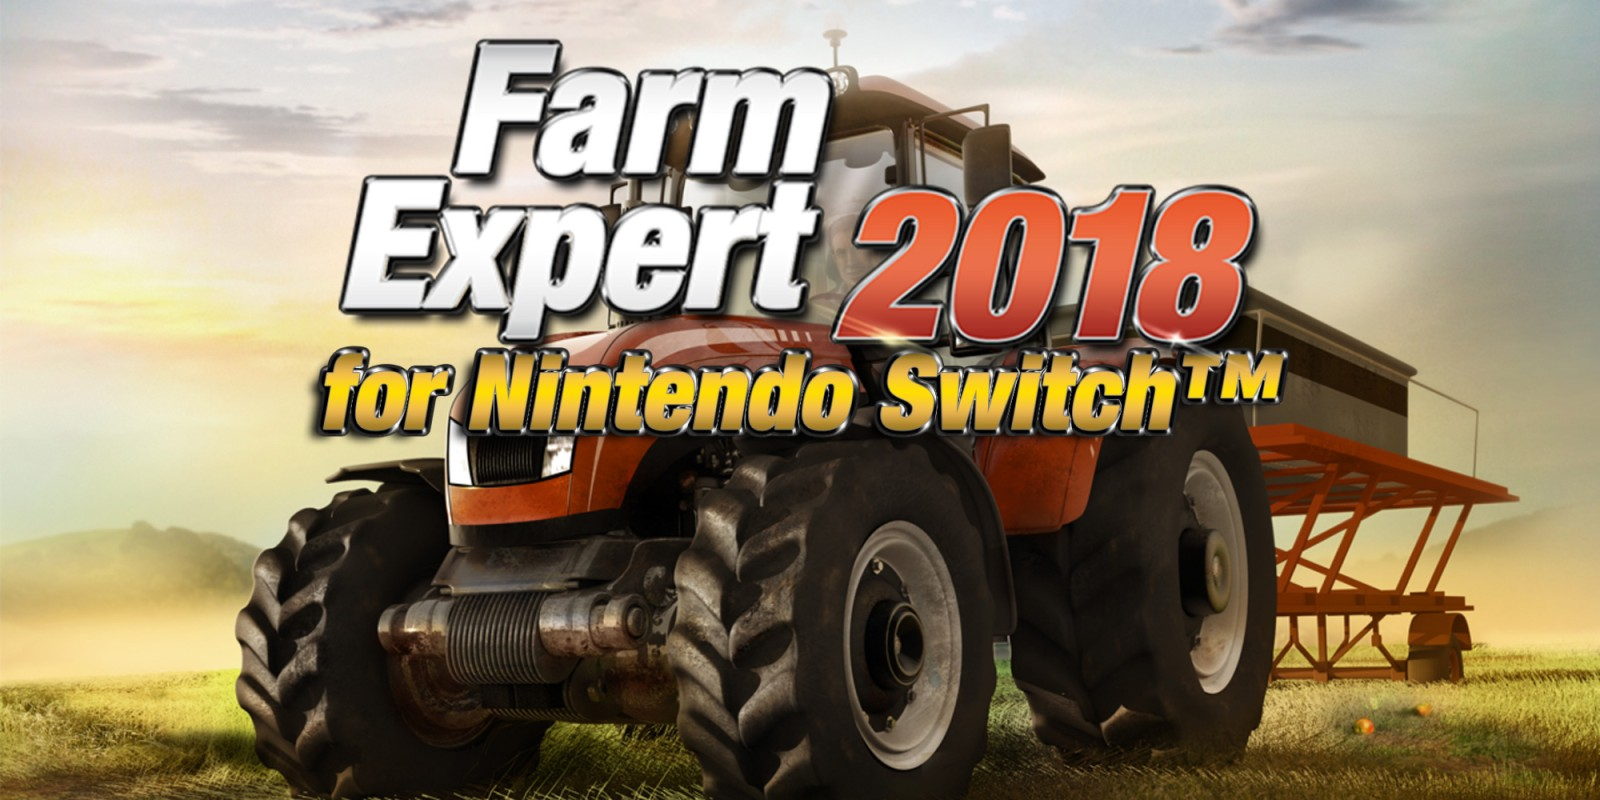 Farm Expert 2018 for Nintendo Switch™